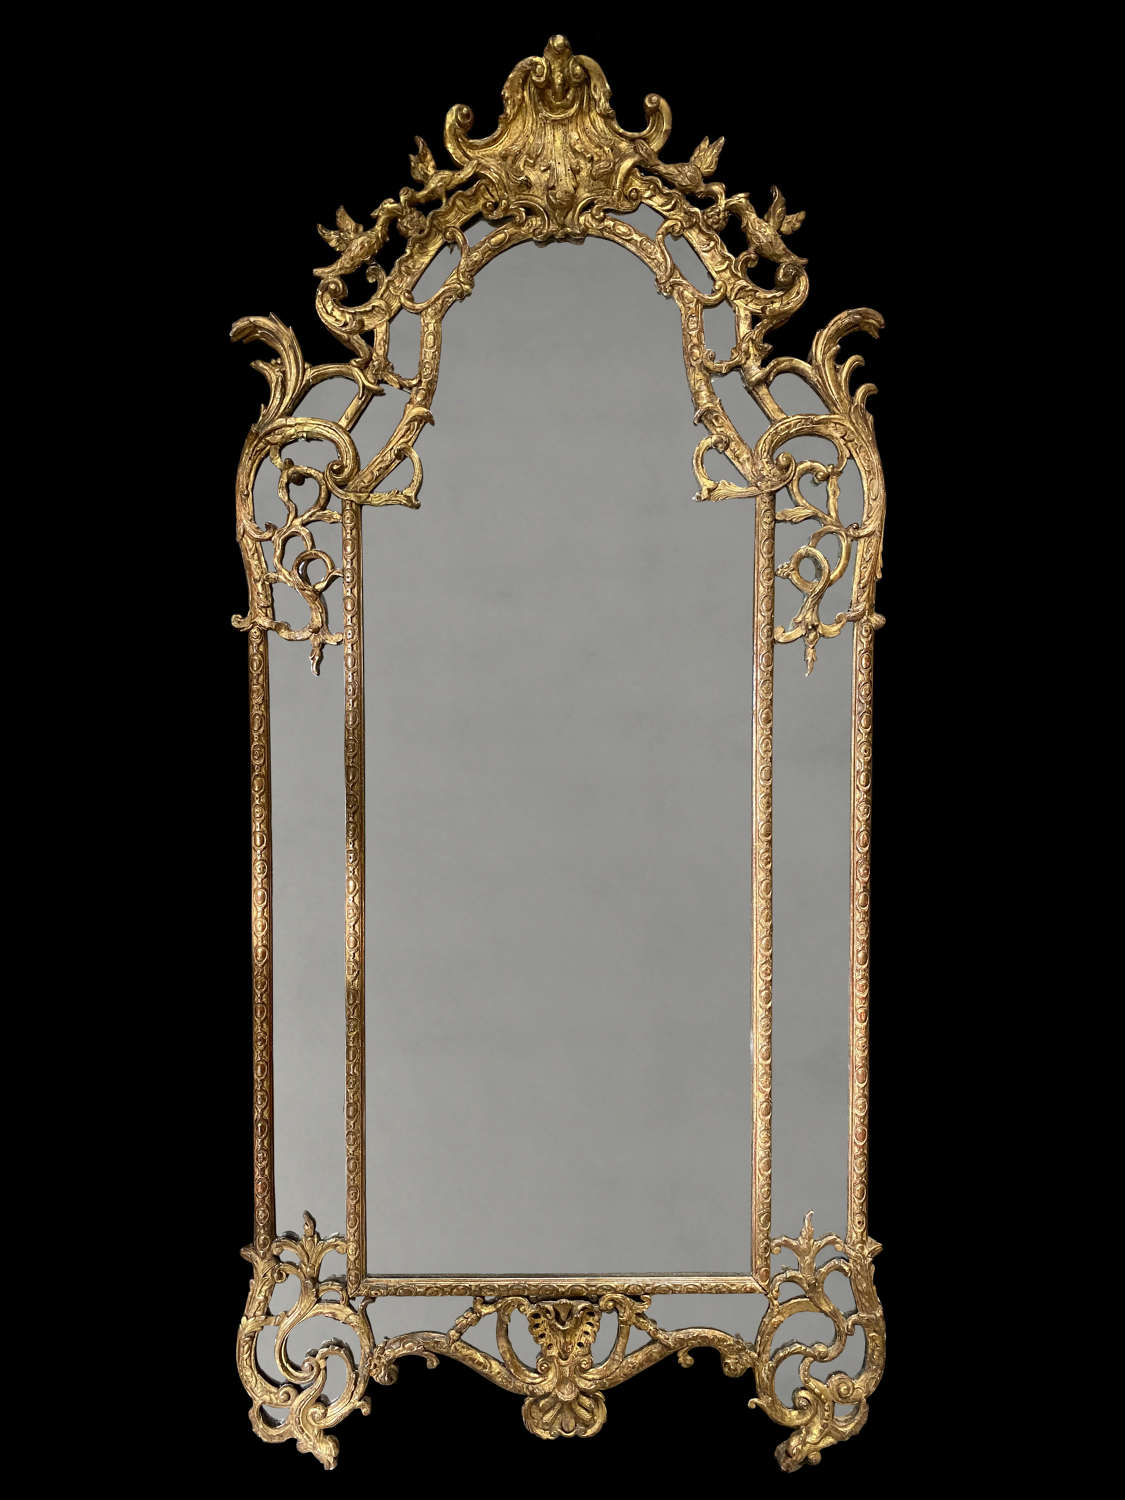 AN IMPORTANT REGENCE PERIOD MIRROR